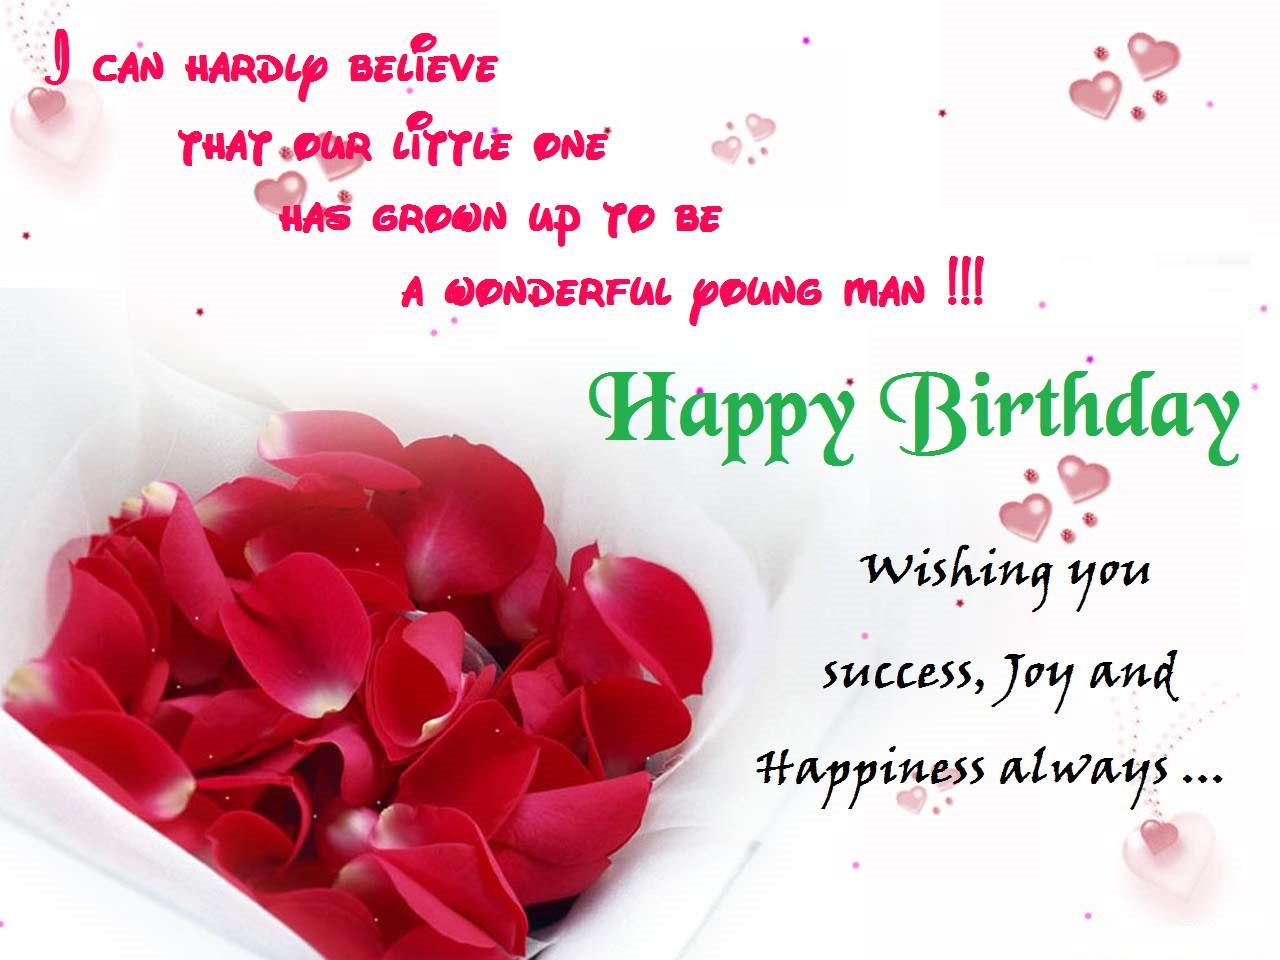 Best ideas about Birthday Wishes Images . Save or Pin Birthday Messages Now.